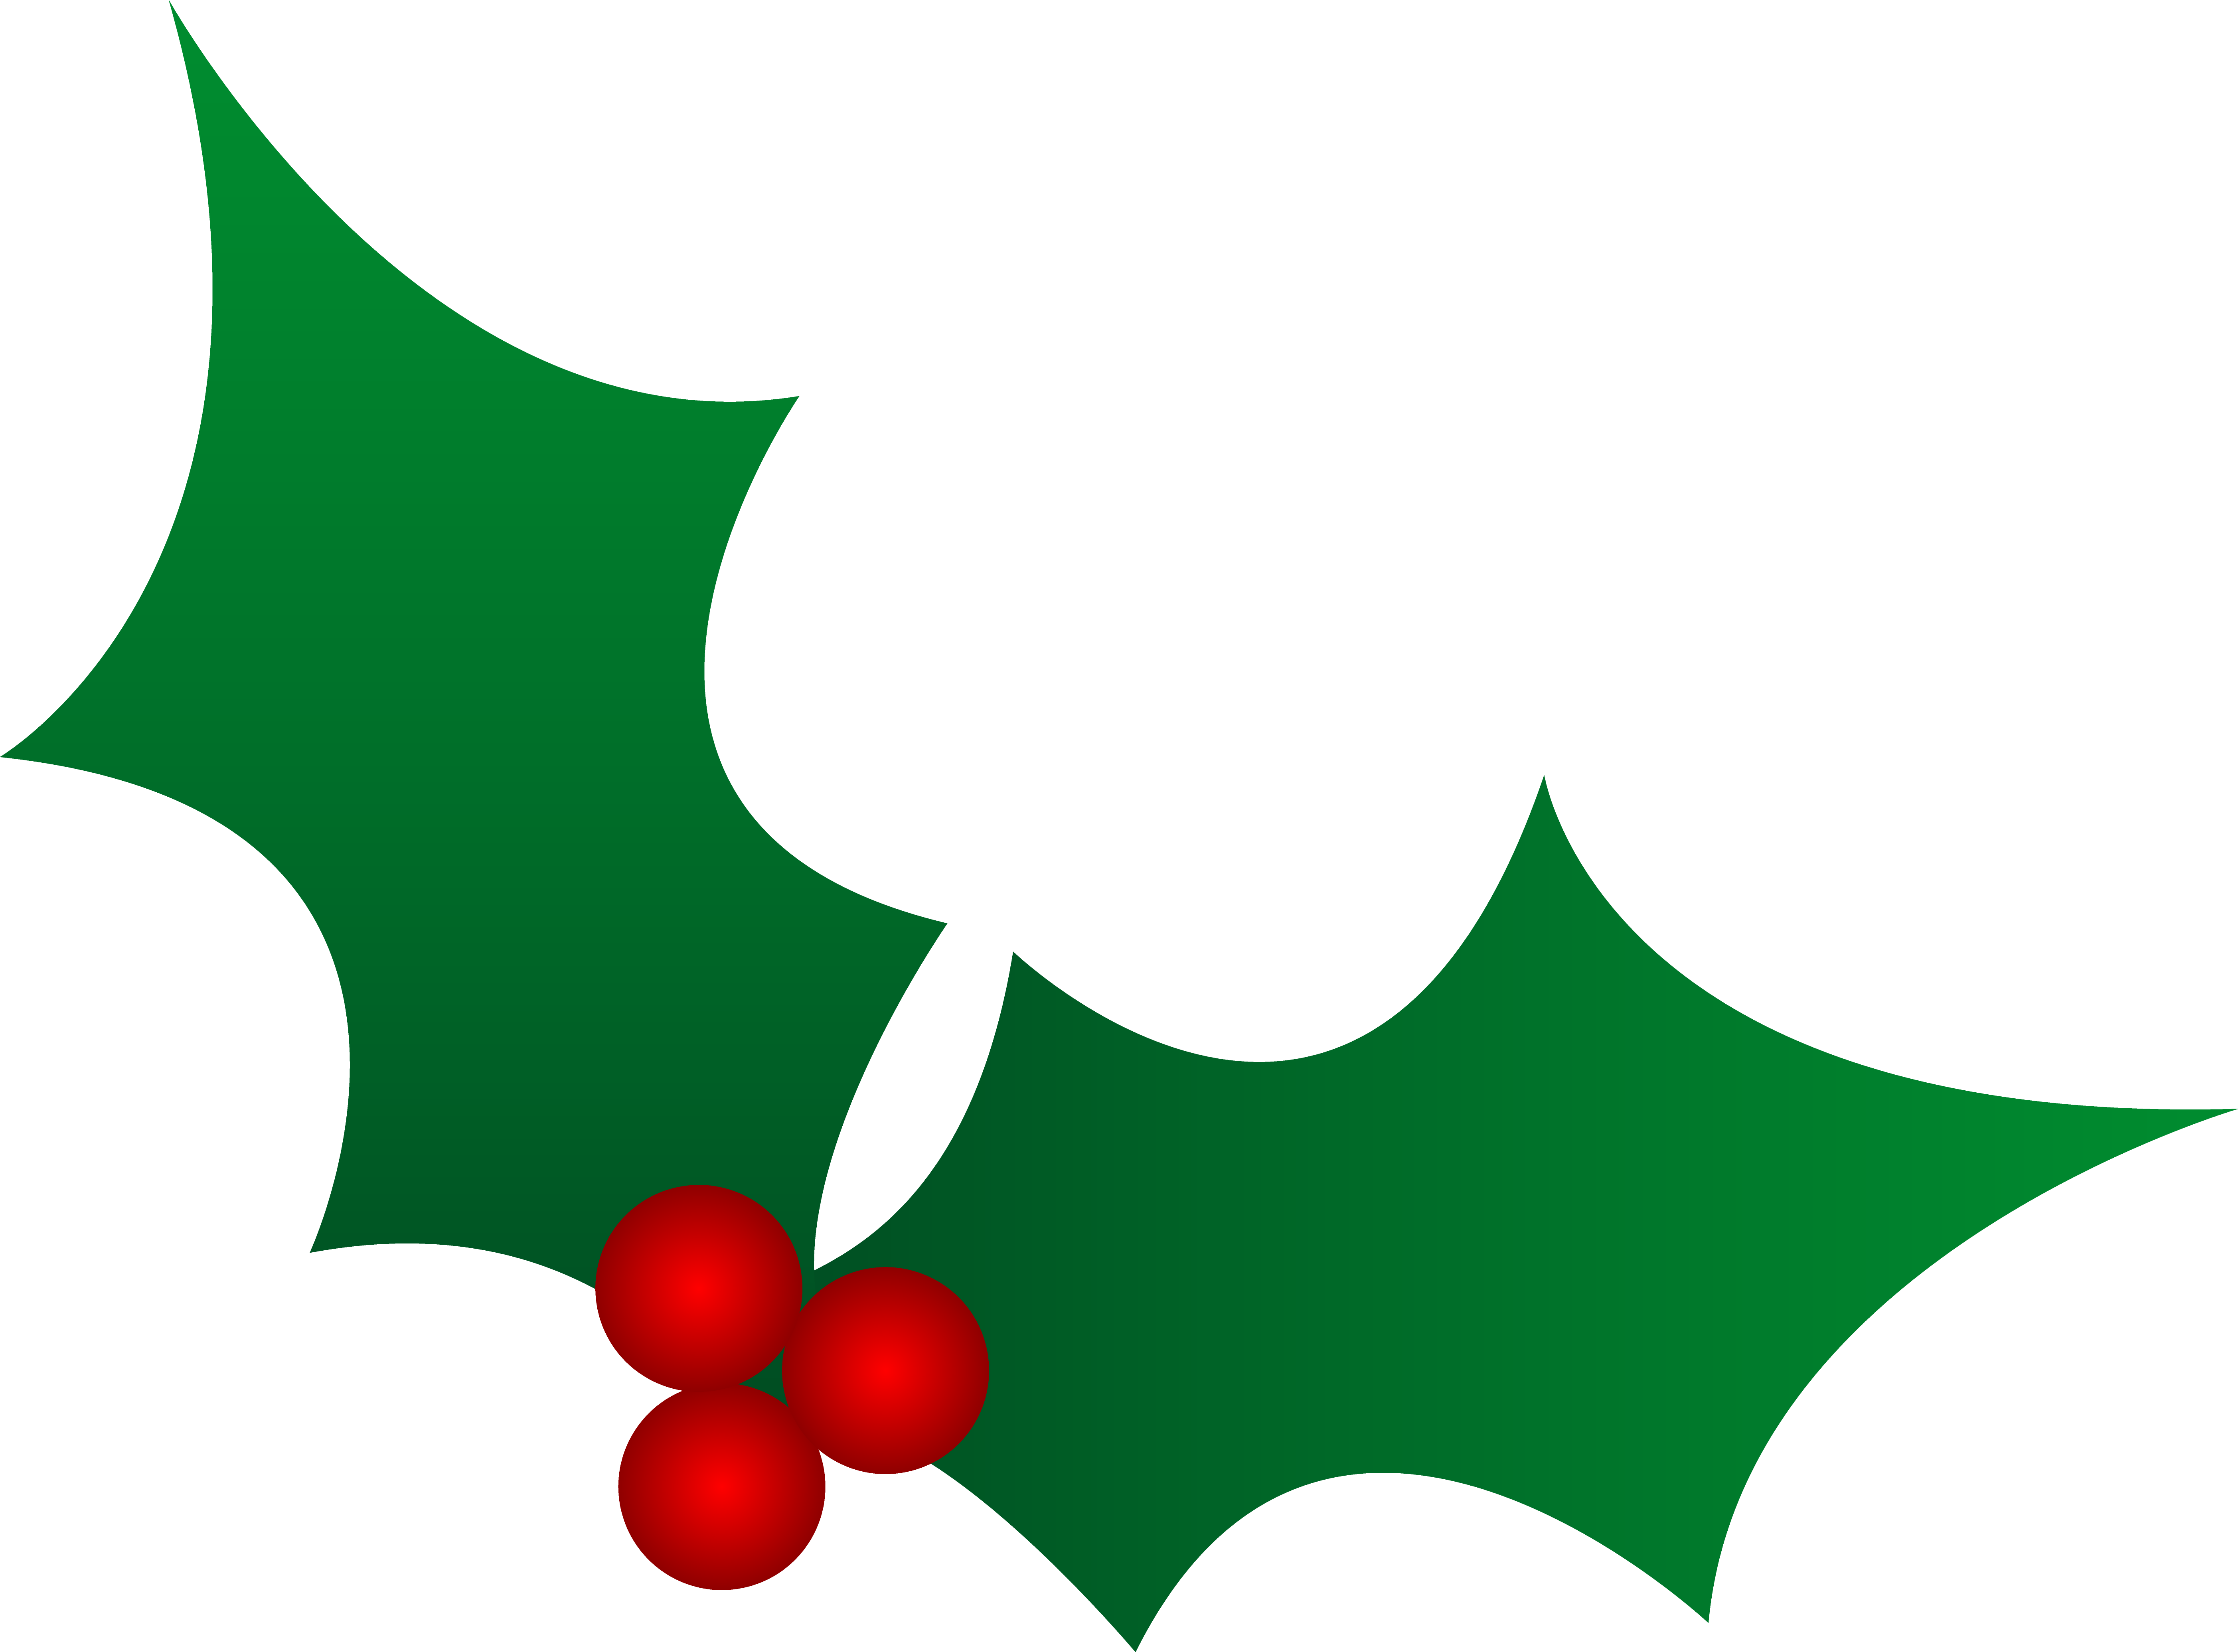 Transparent holly and ivy. Green christmas clip art